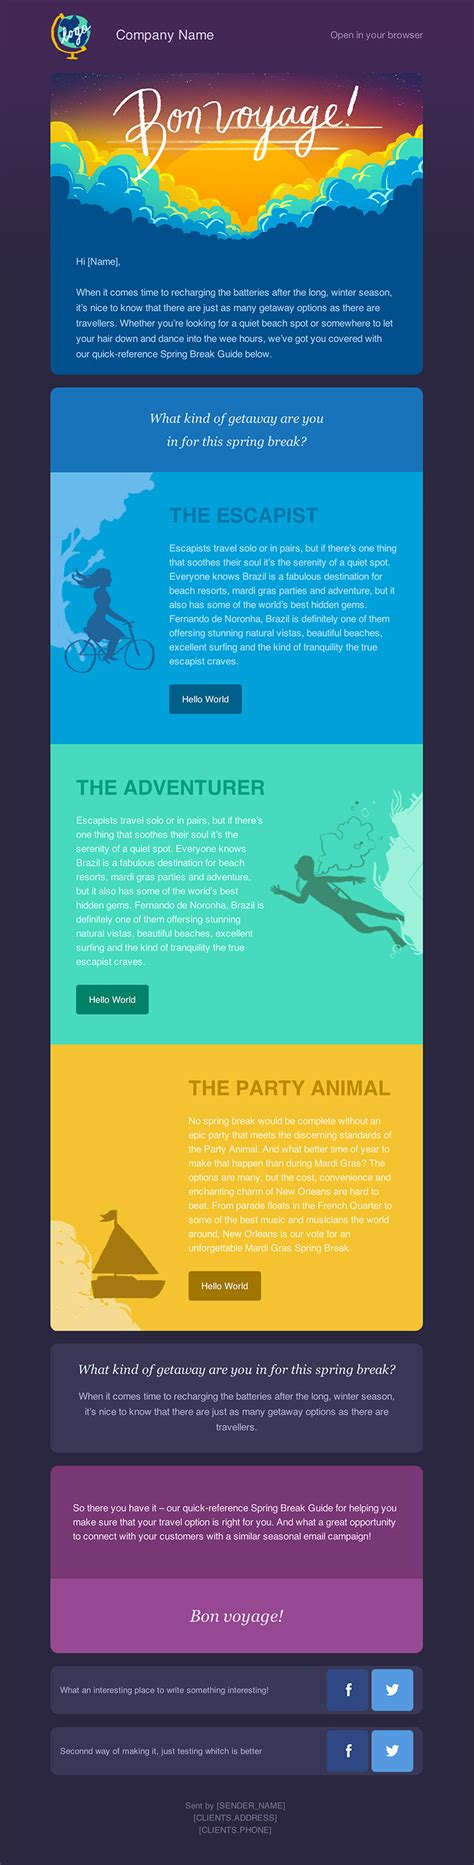 Free Business Newsletter Templates Portablegasgrillweber Com Newsletter Templates Email Free